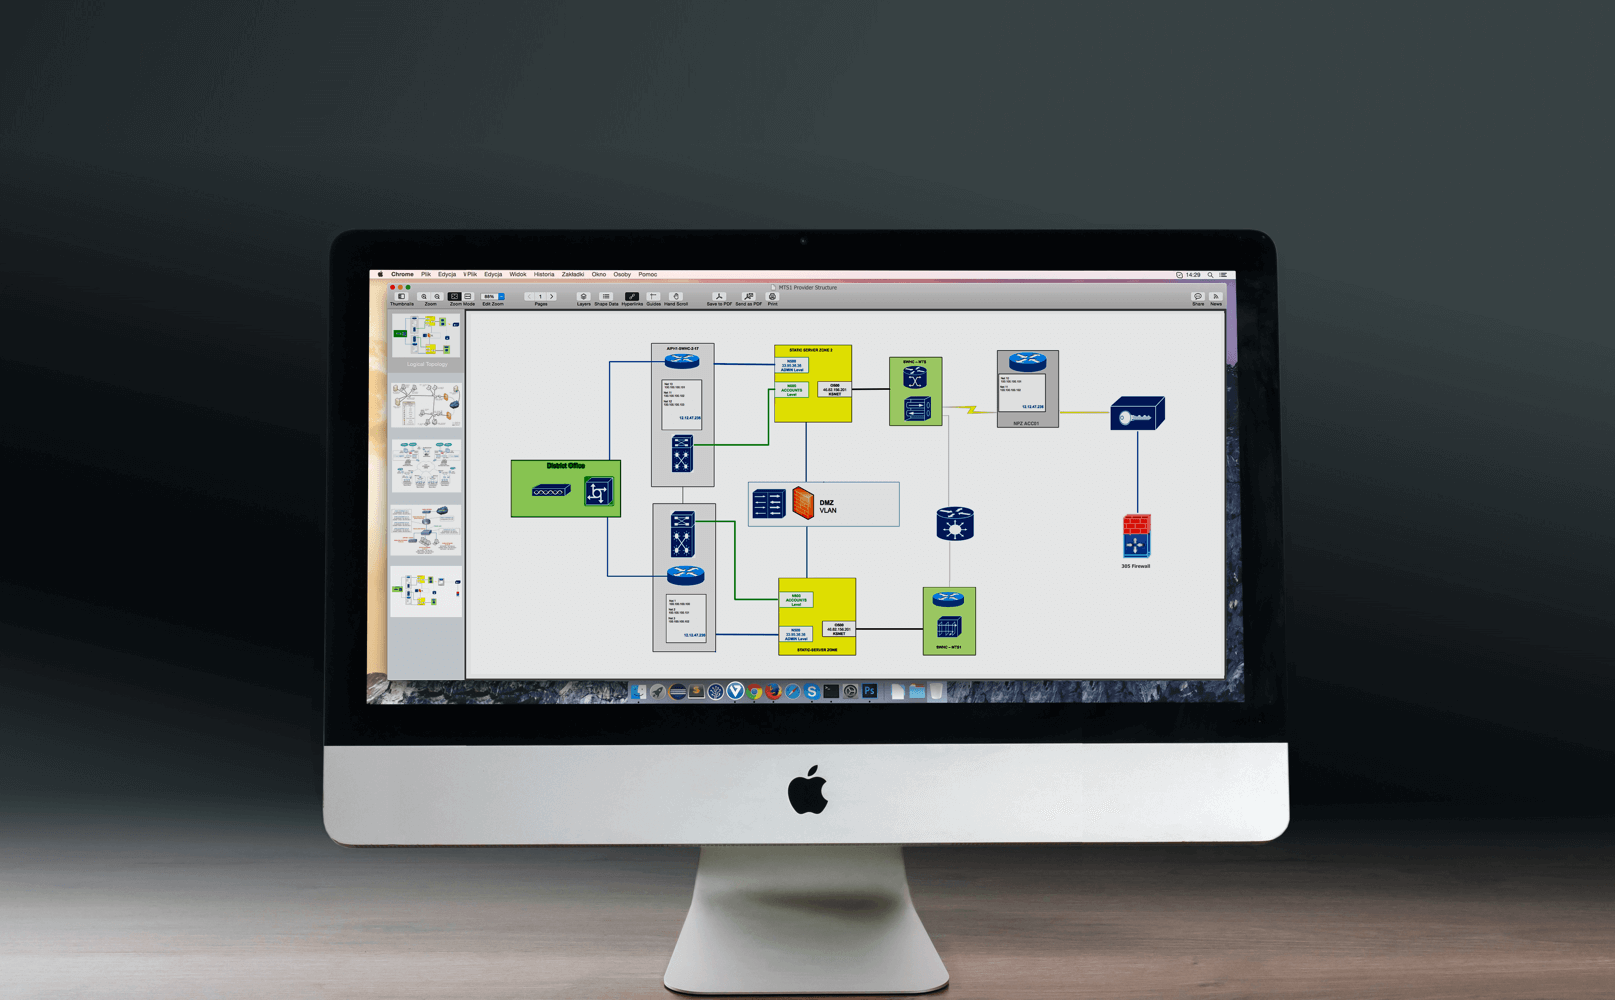 preview visio file on mac